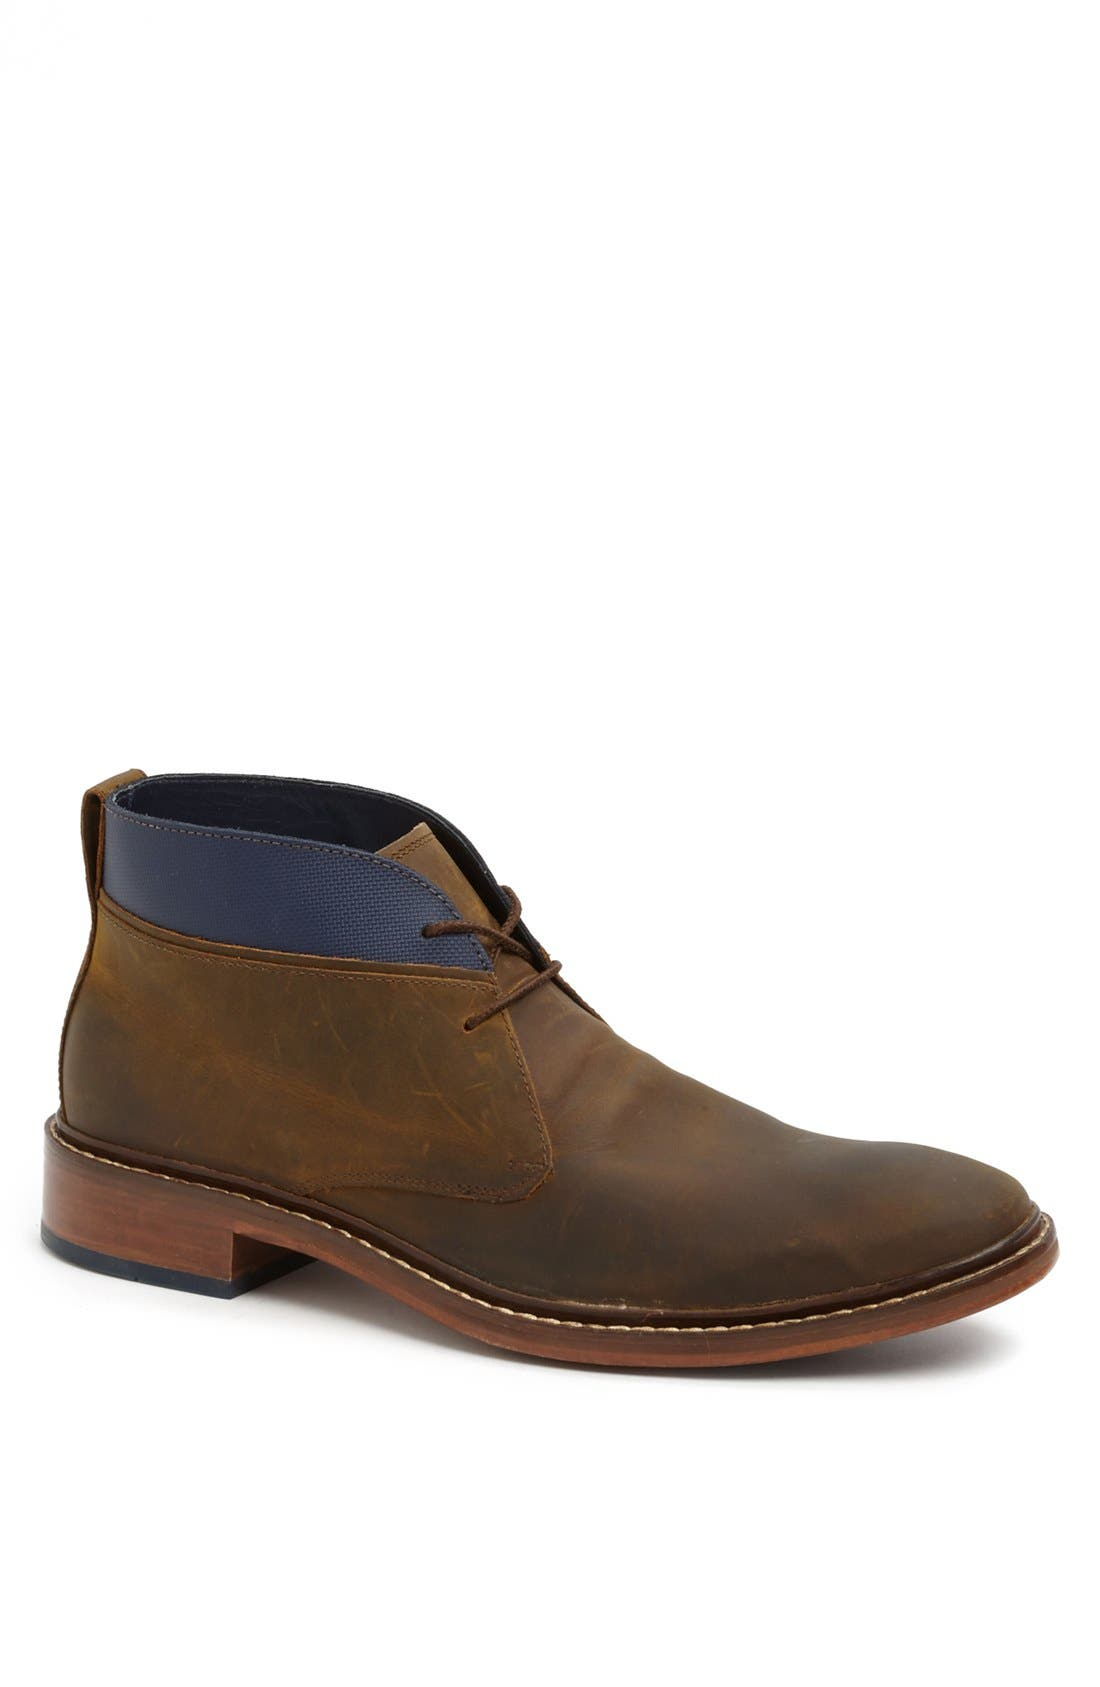 Alternate Image 1 Selected - Cole Haan 'Colton' Chukka Boot (Men) (Nordstrom Exclusive)